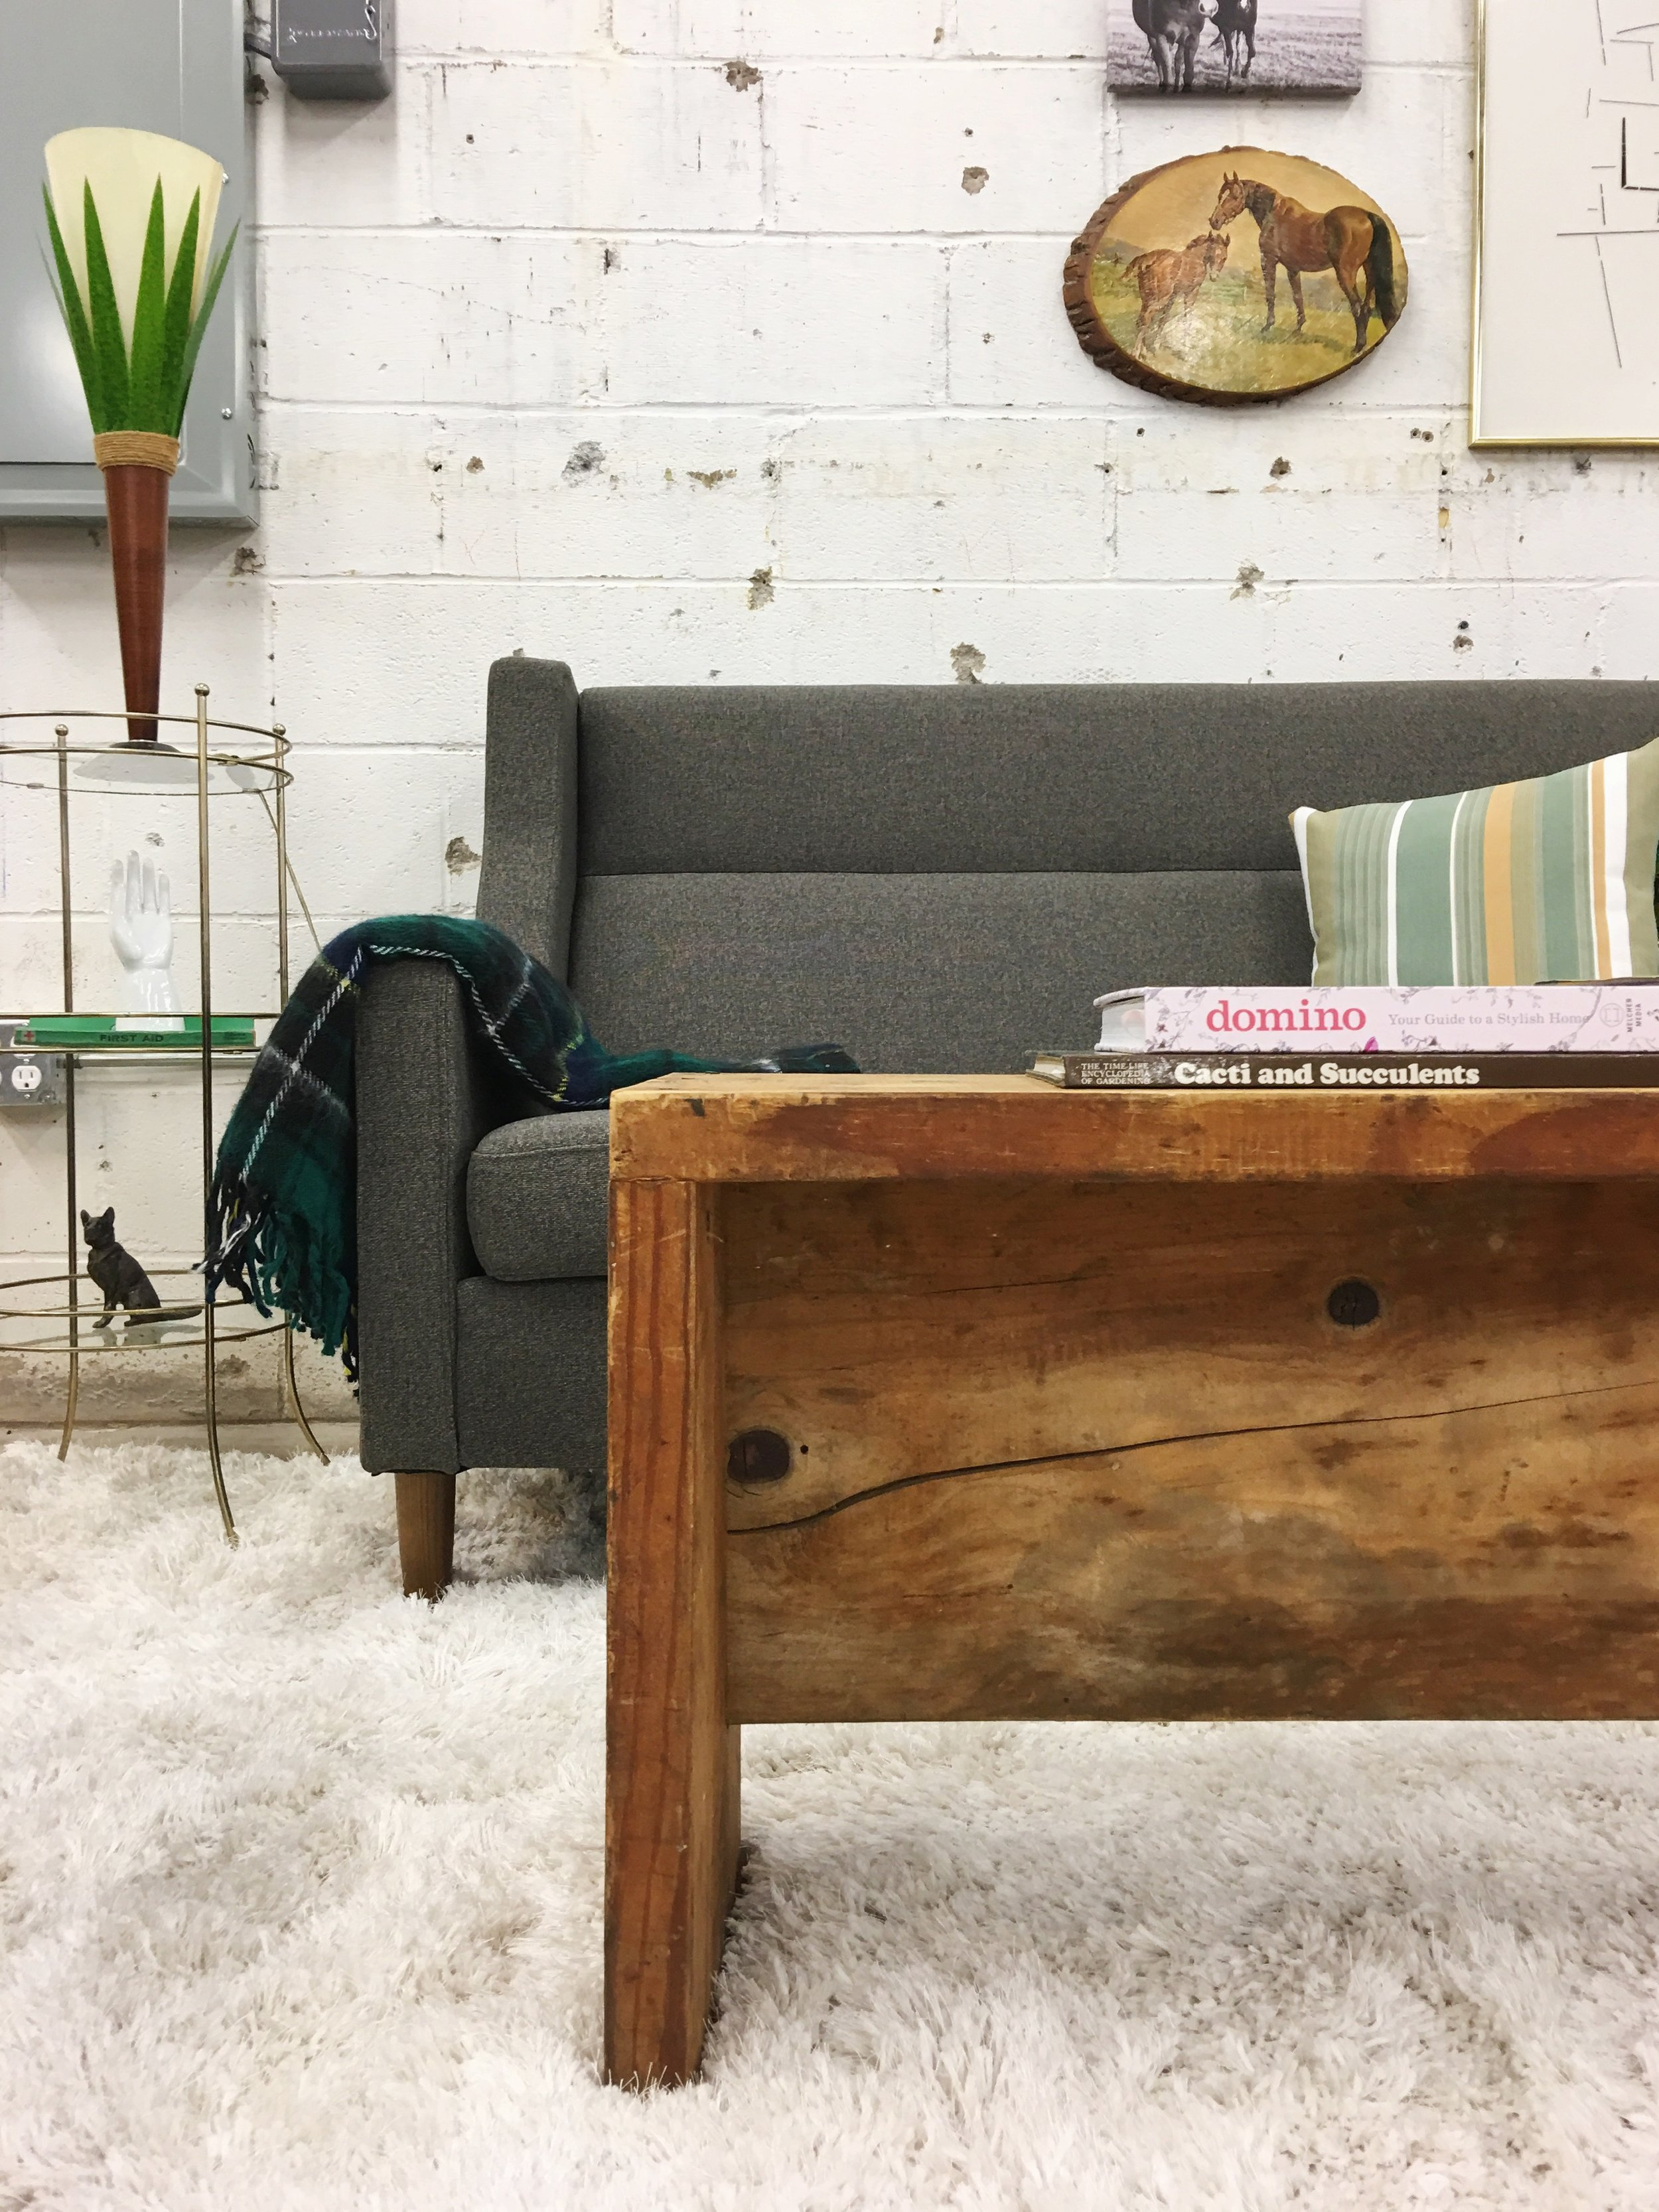 Maximalist: The warm and cozy vibe has been turned up here with a vintage wool blanket and knick-knacks with personality.